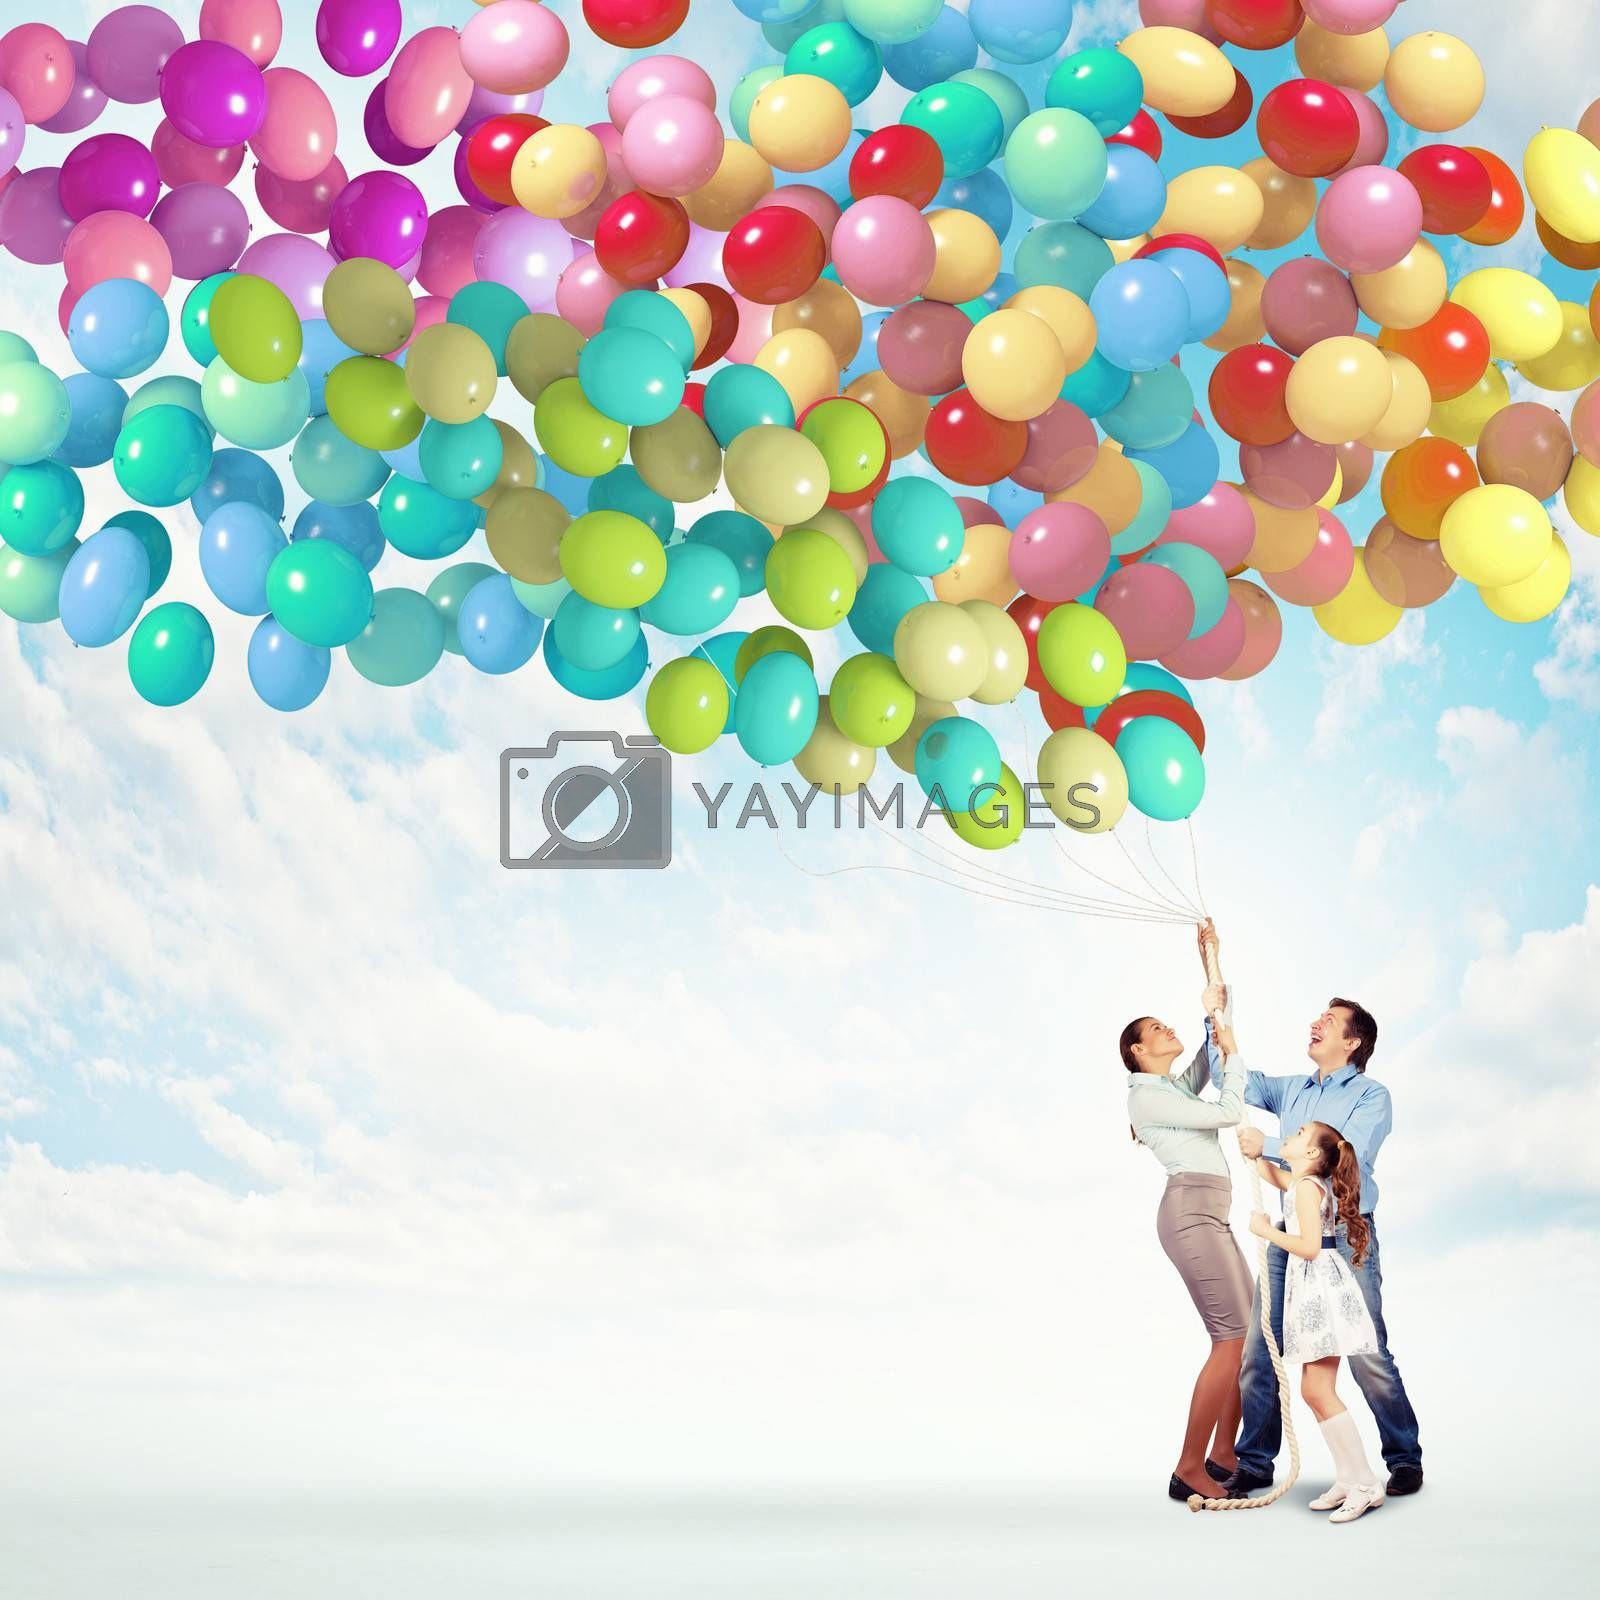 Image of happy family holding bunch of colorful balloons